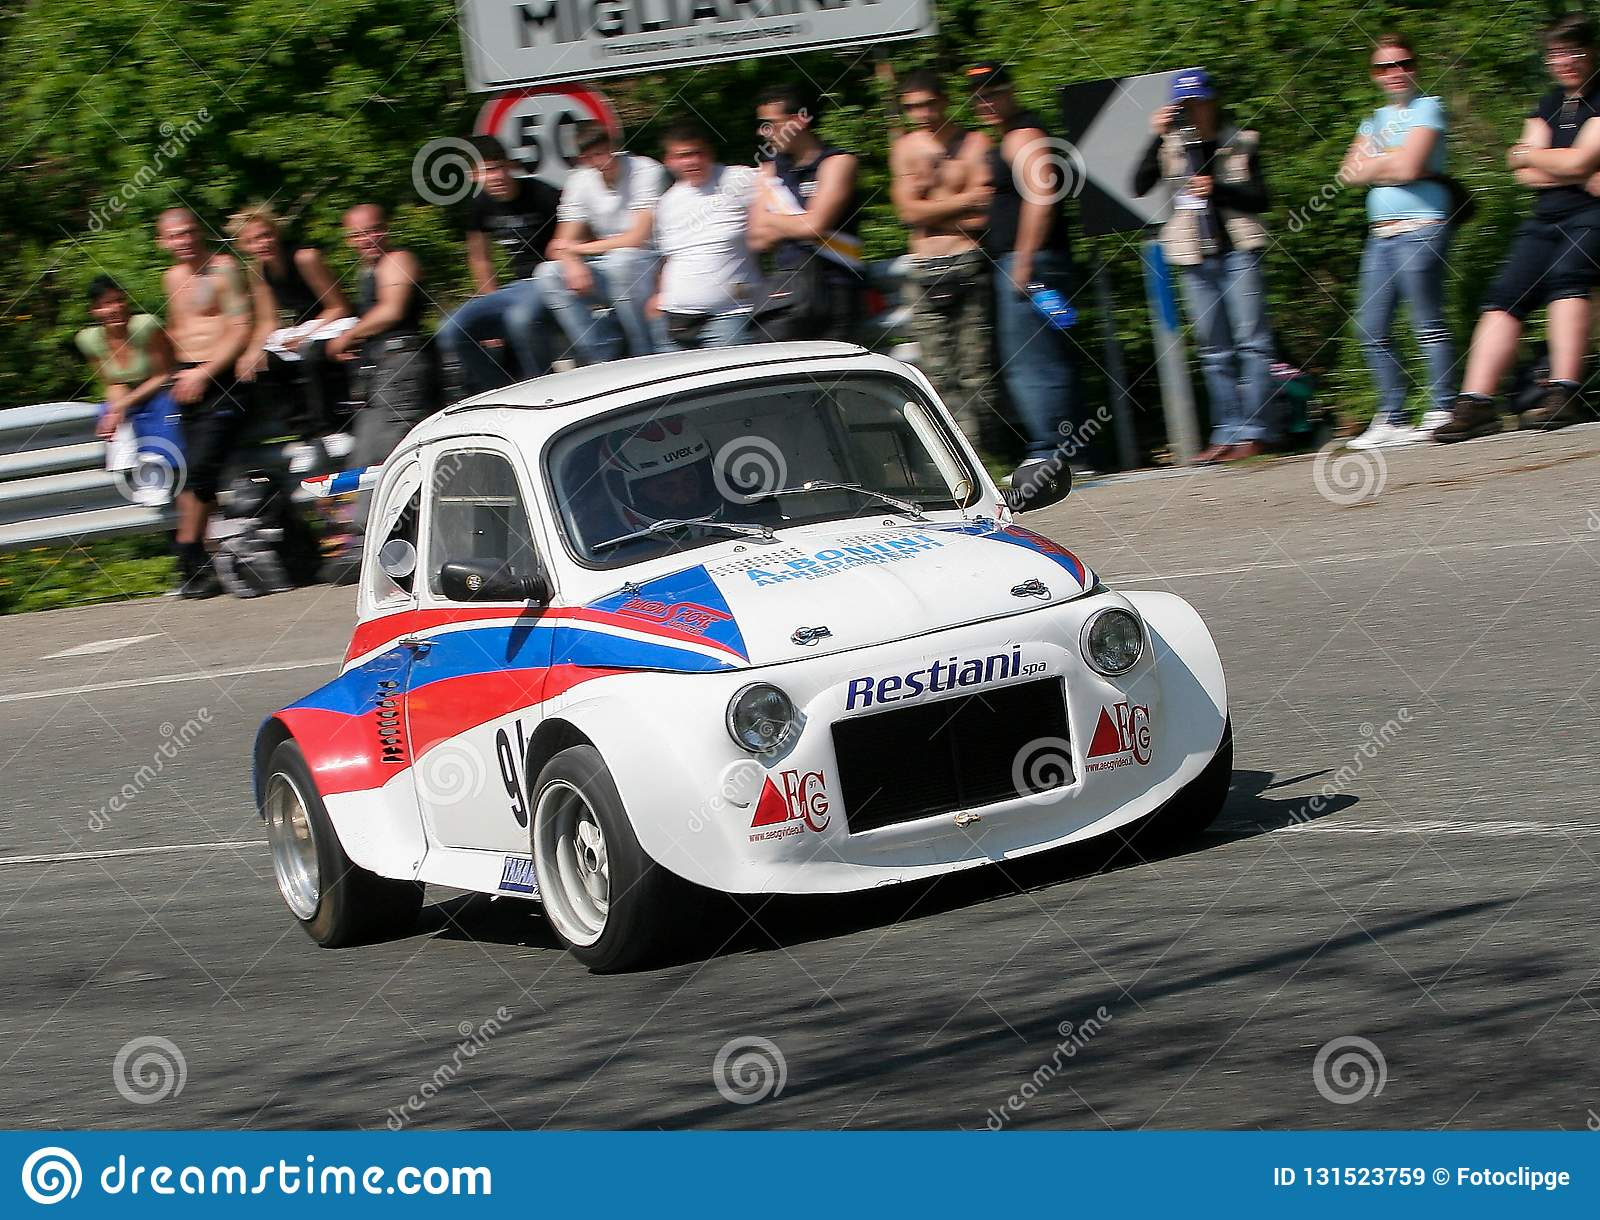 Fiat 500 Prototype Race Car During The Uphill Speed Race Editorial